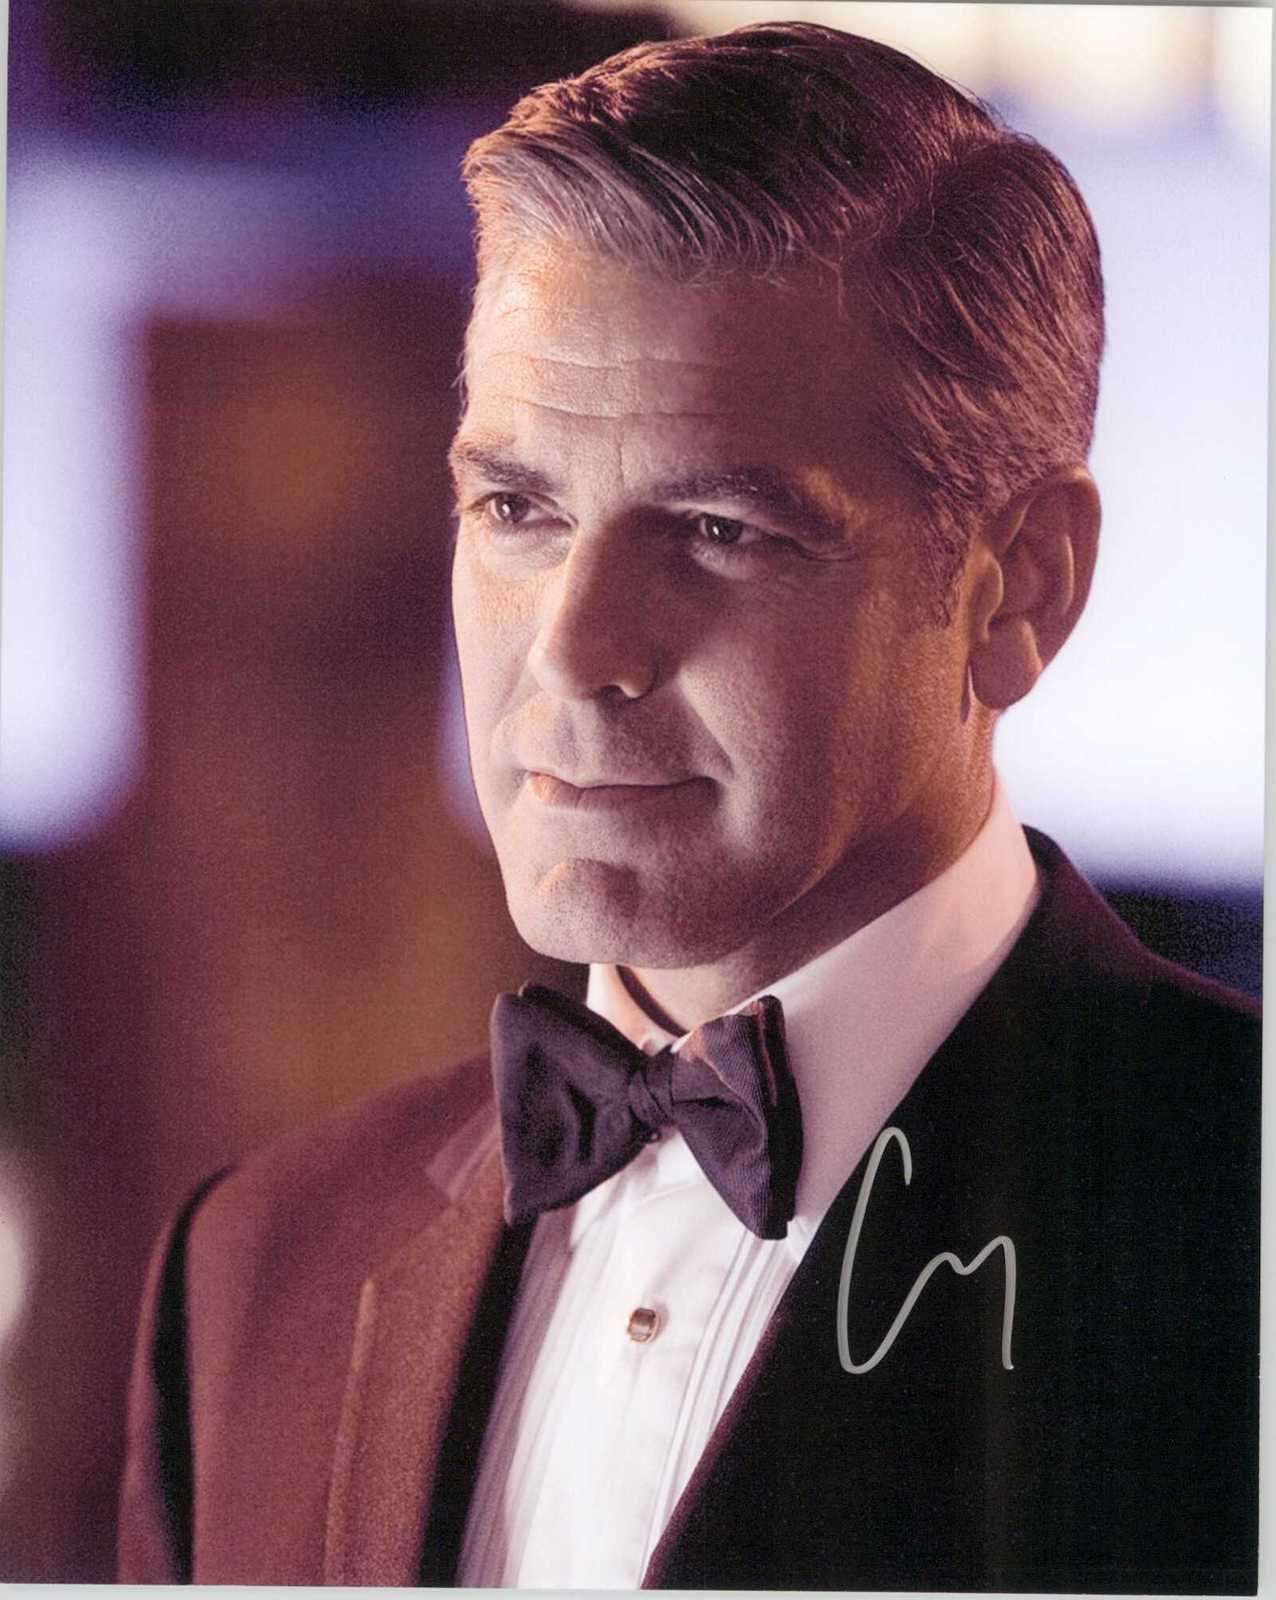 Primary image for George Clooney Signed Autographed Glossy 8x10 Photo